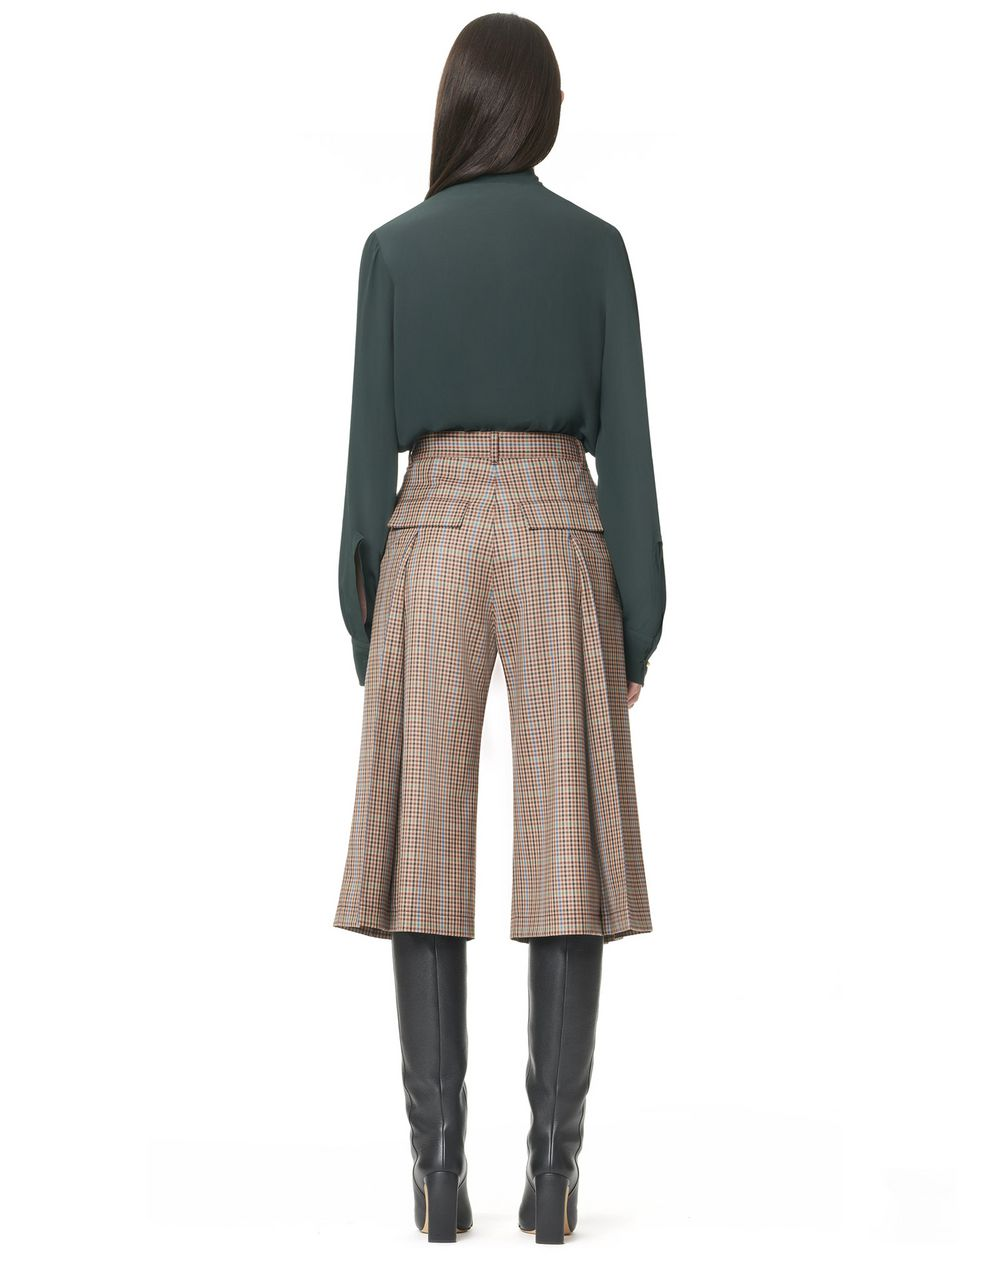 PLEATED CULOTTES - Lanvin